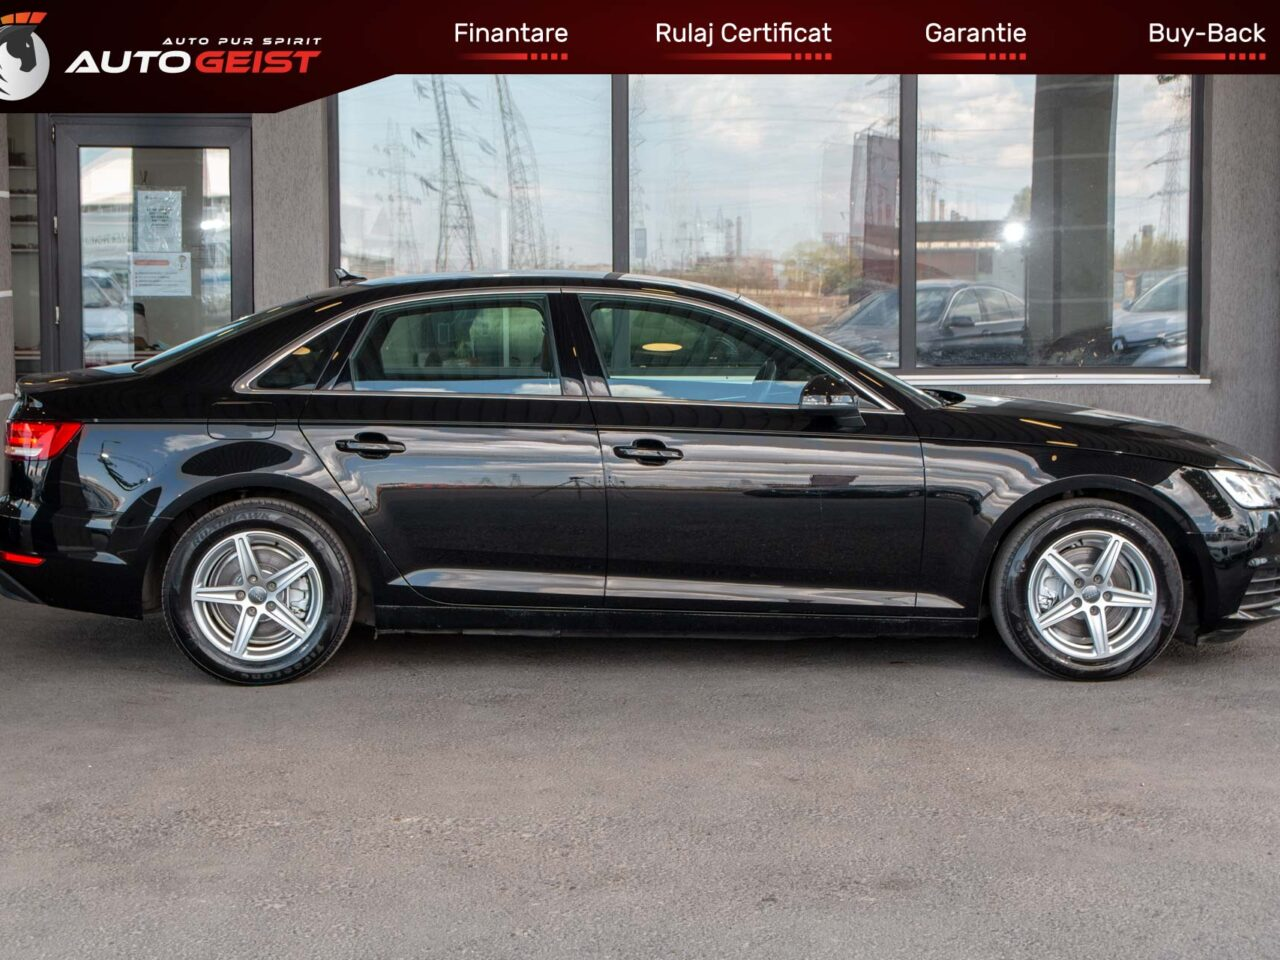 audi-a4-businessline-8401